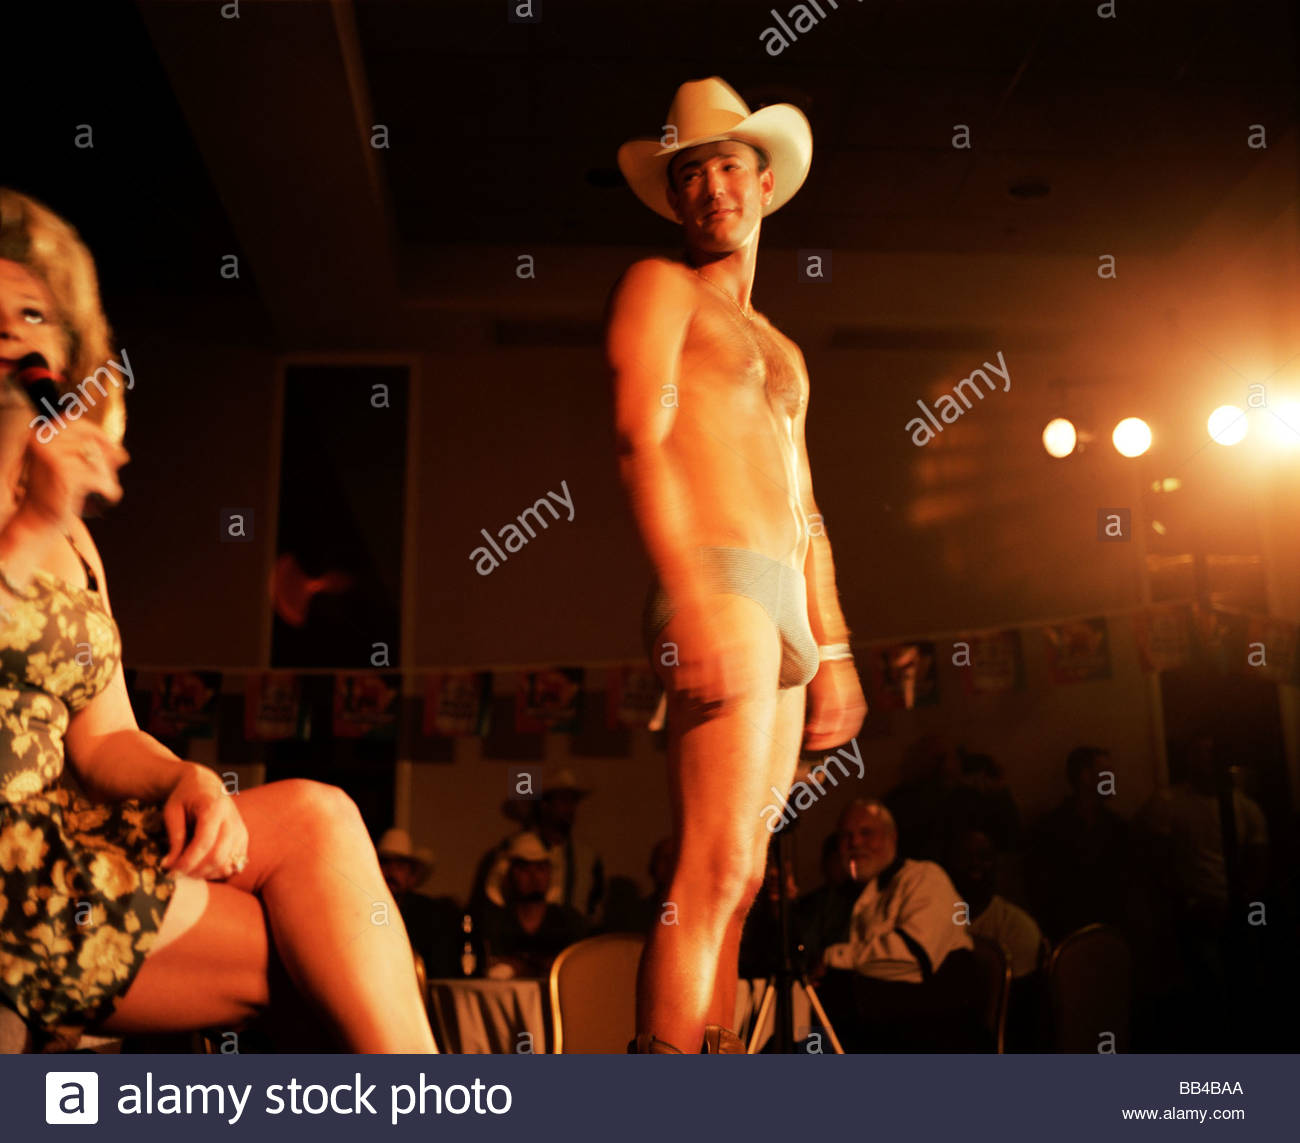 Gay rodeo in san diego